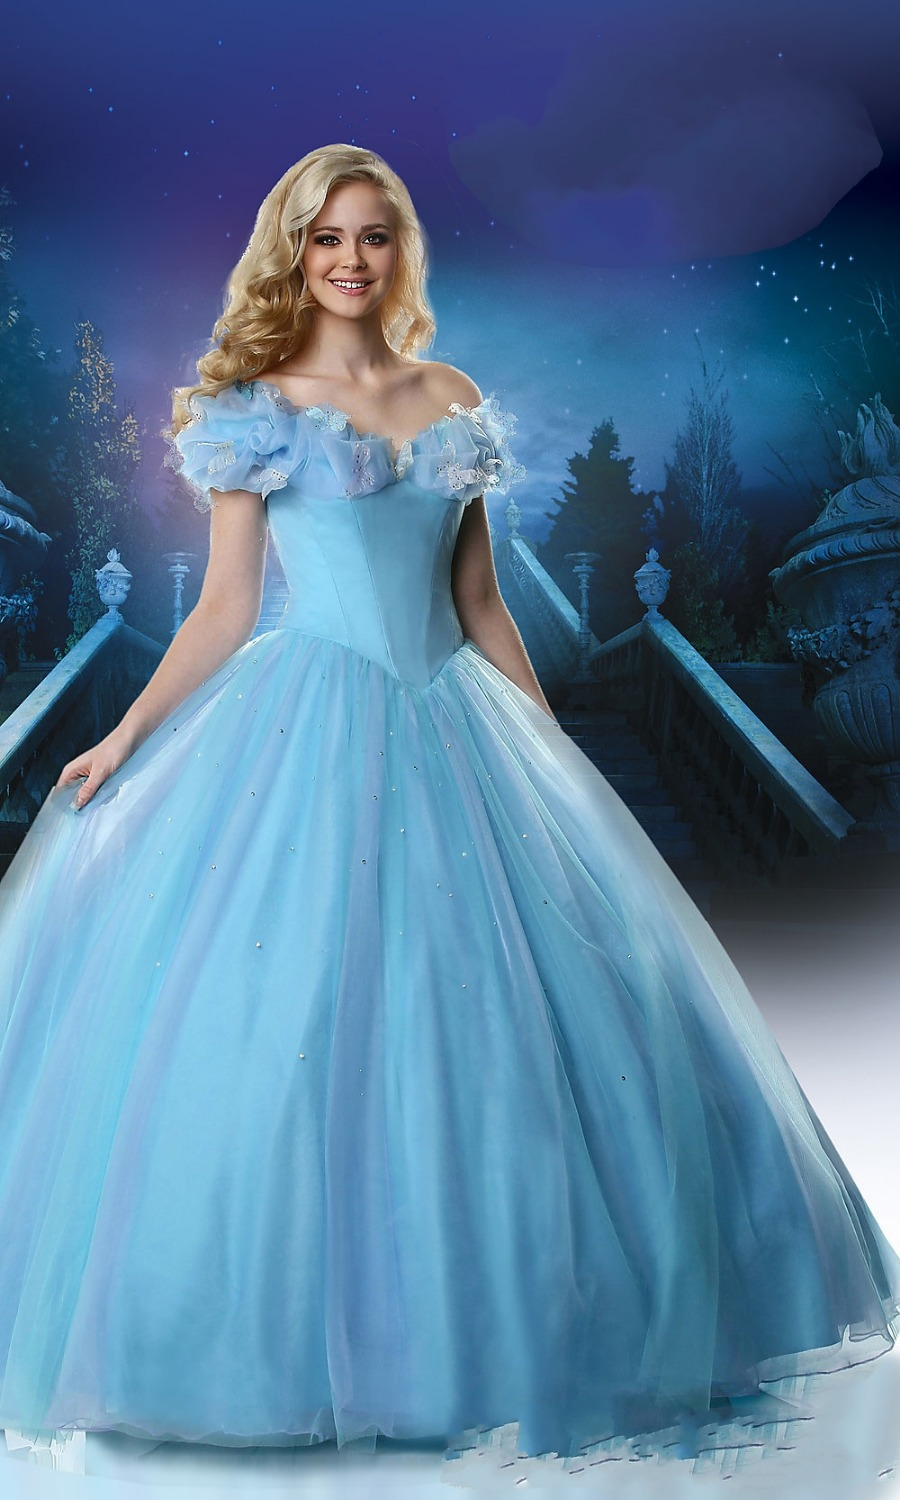 Wedding Ice Blue Dress popular ice blue prom dresses buy cheap lots new arrival 2015 rp10 ball gown party dress for graduation elegant cap